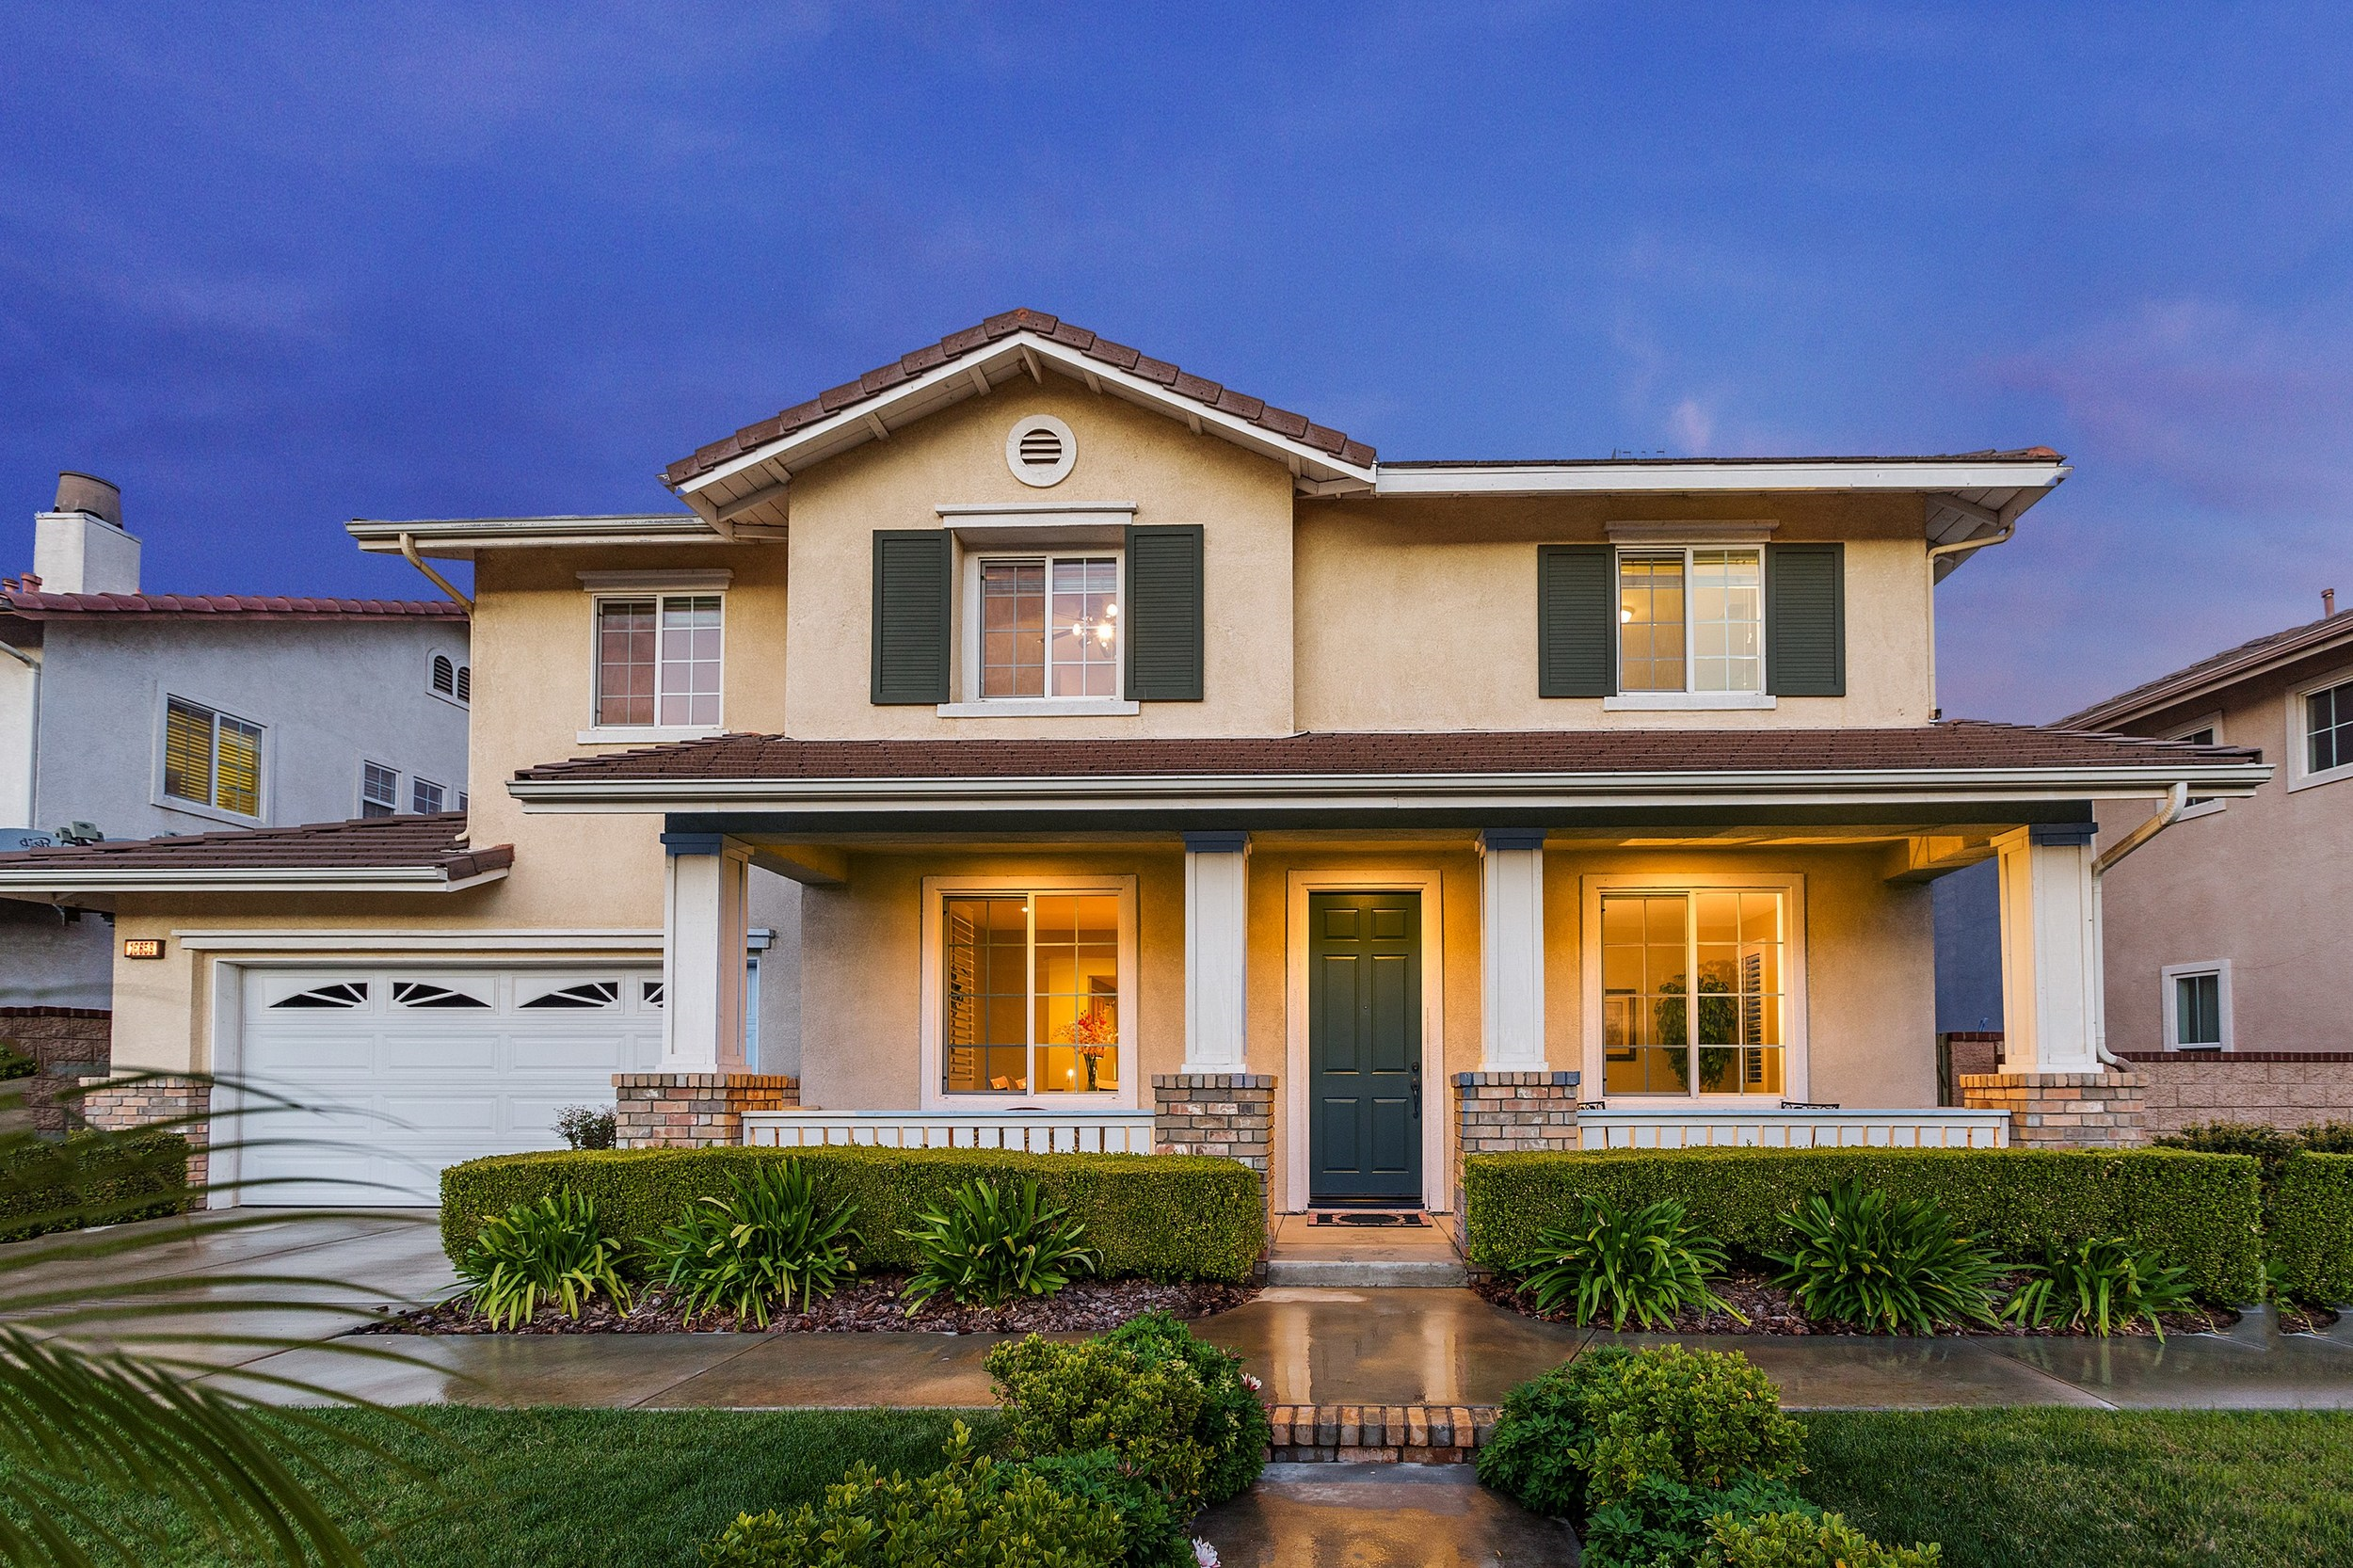 16659 Sagebrush St Chino Hills, CA 4BR, 2.5BA 2,807 SqFt Living, 6,300 SqFt Lot